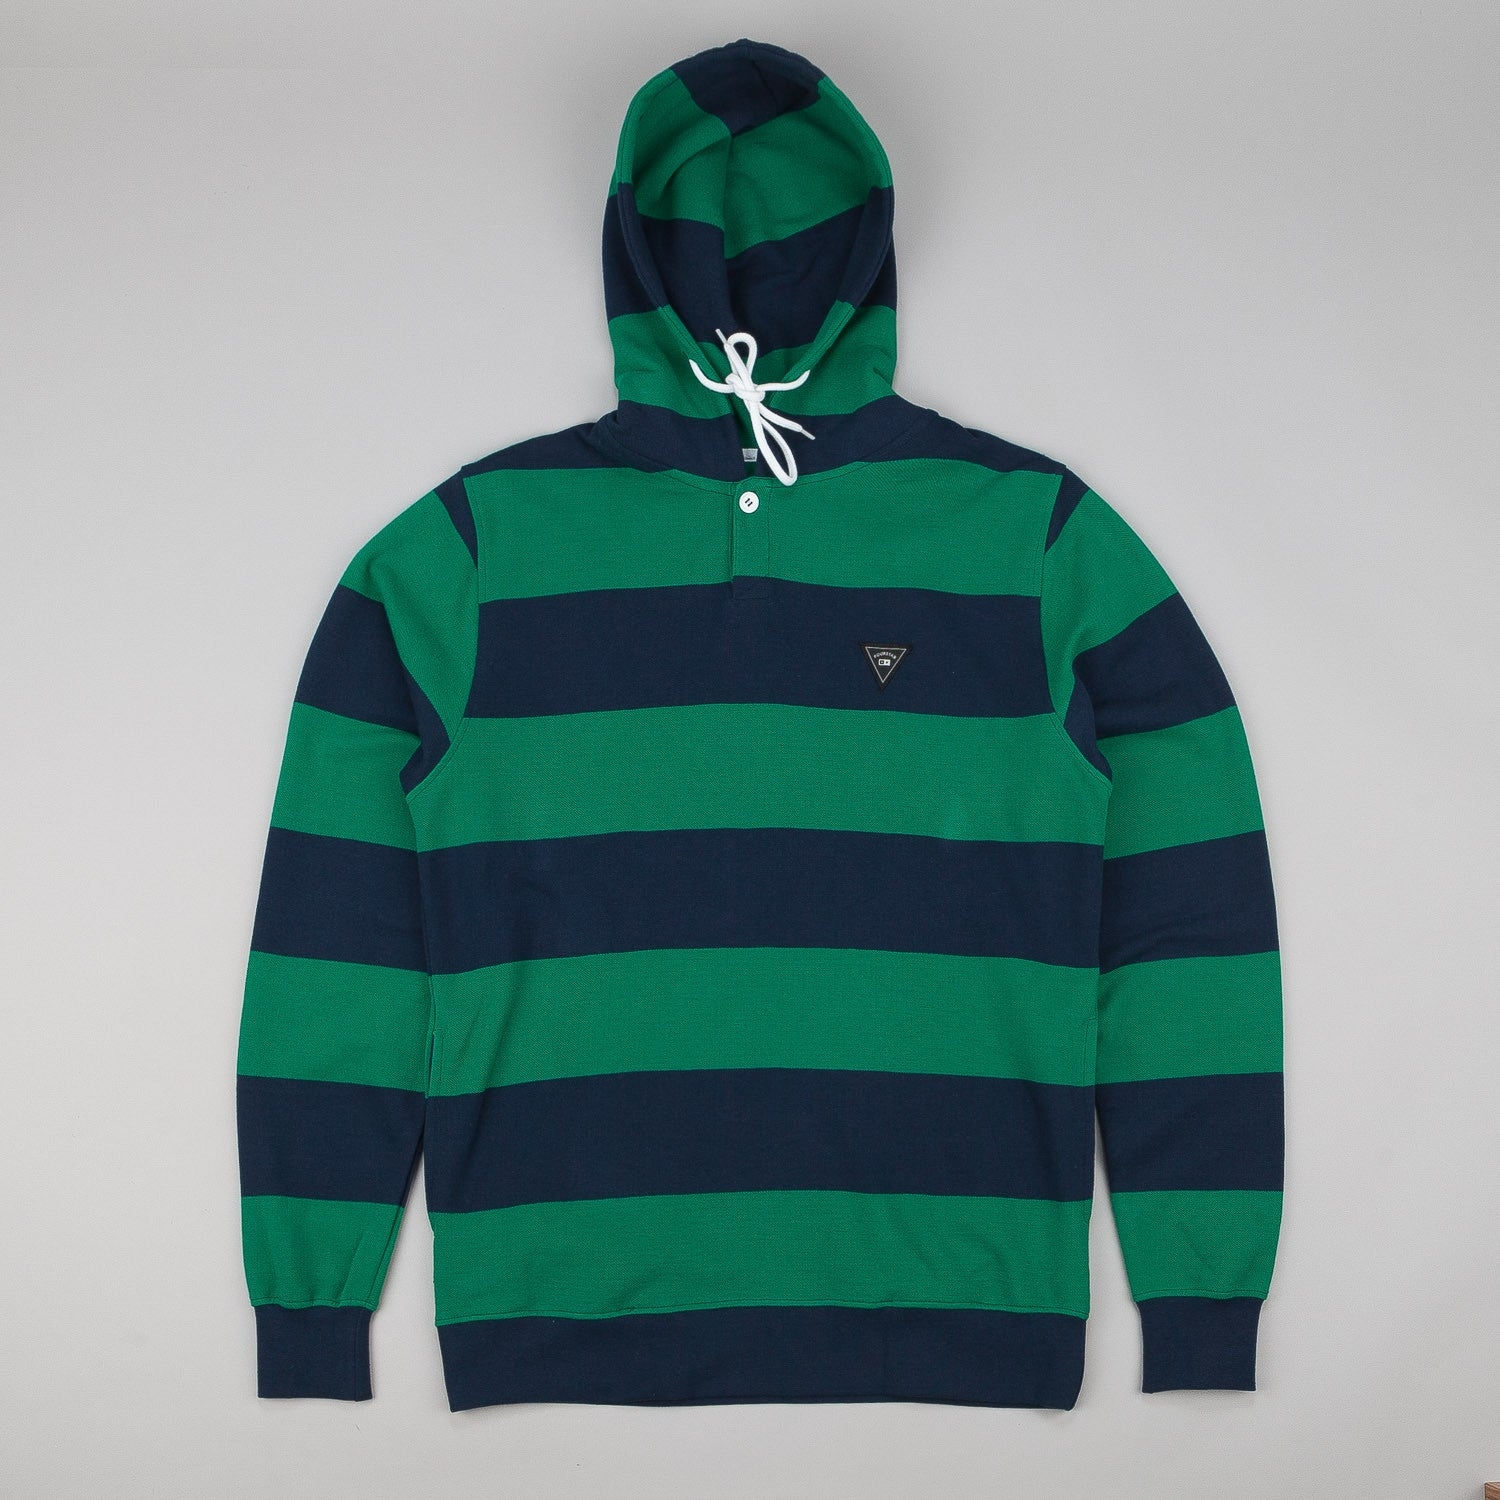 Fourstar Koston Striped Hooded Sweatshirt